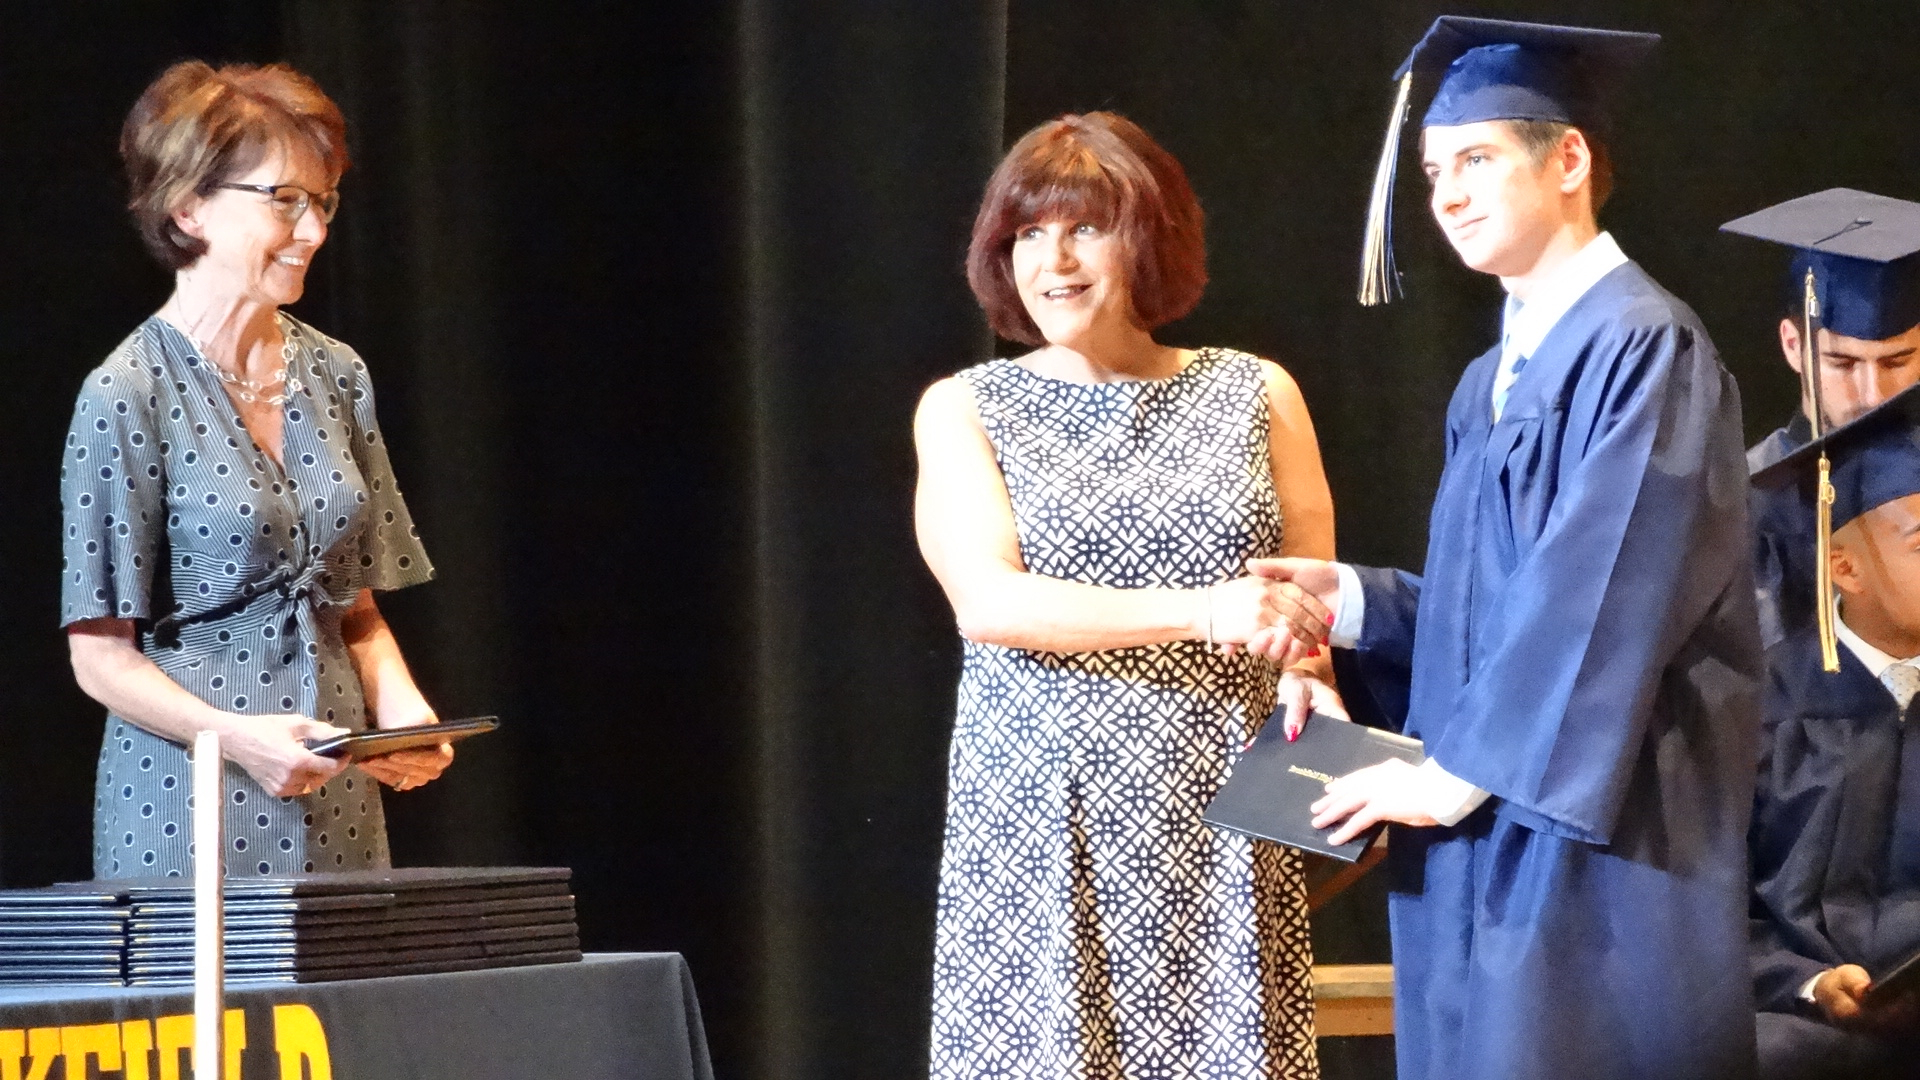 Logan Moore accepts his diploma from Brookfield Board of Education President Ronad Bonekovic. Superintendent Velina Jo Taylor is at left.